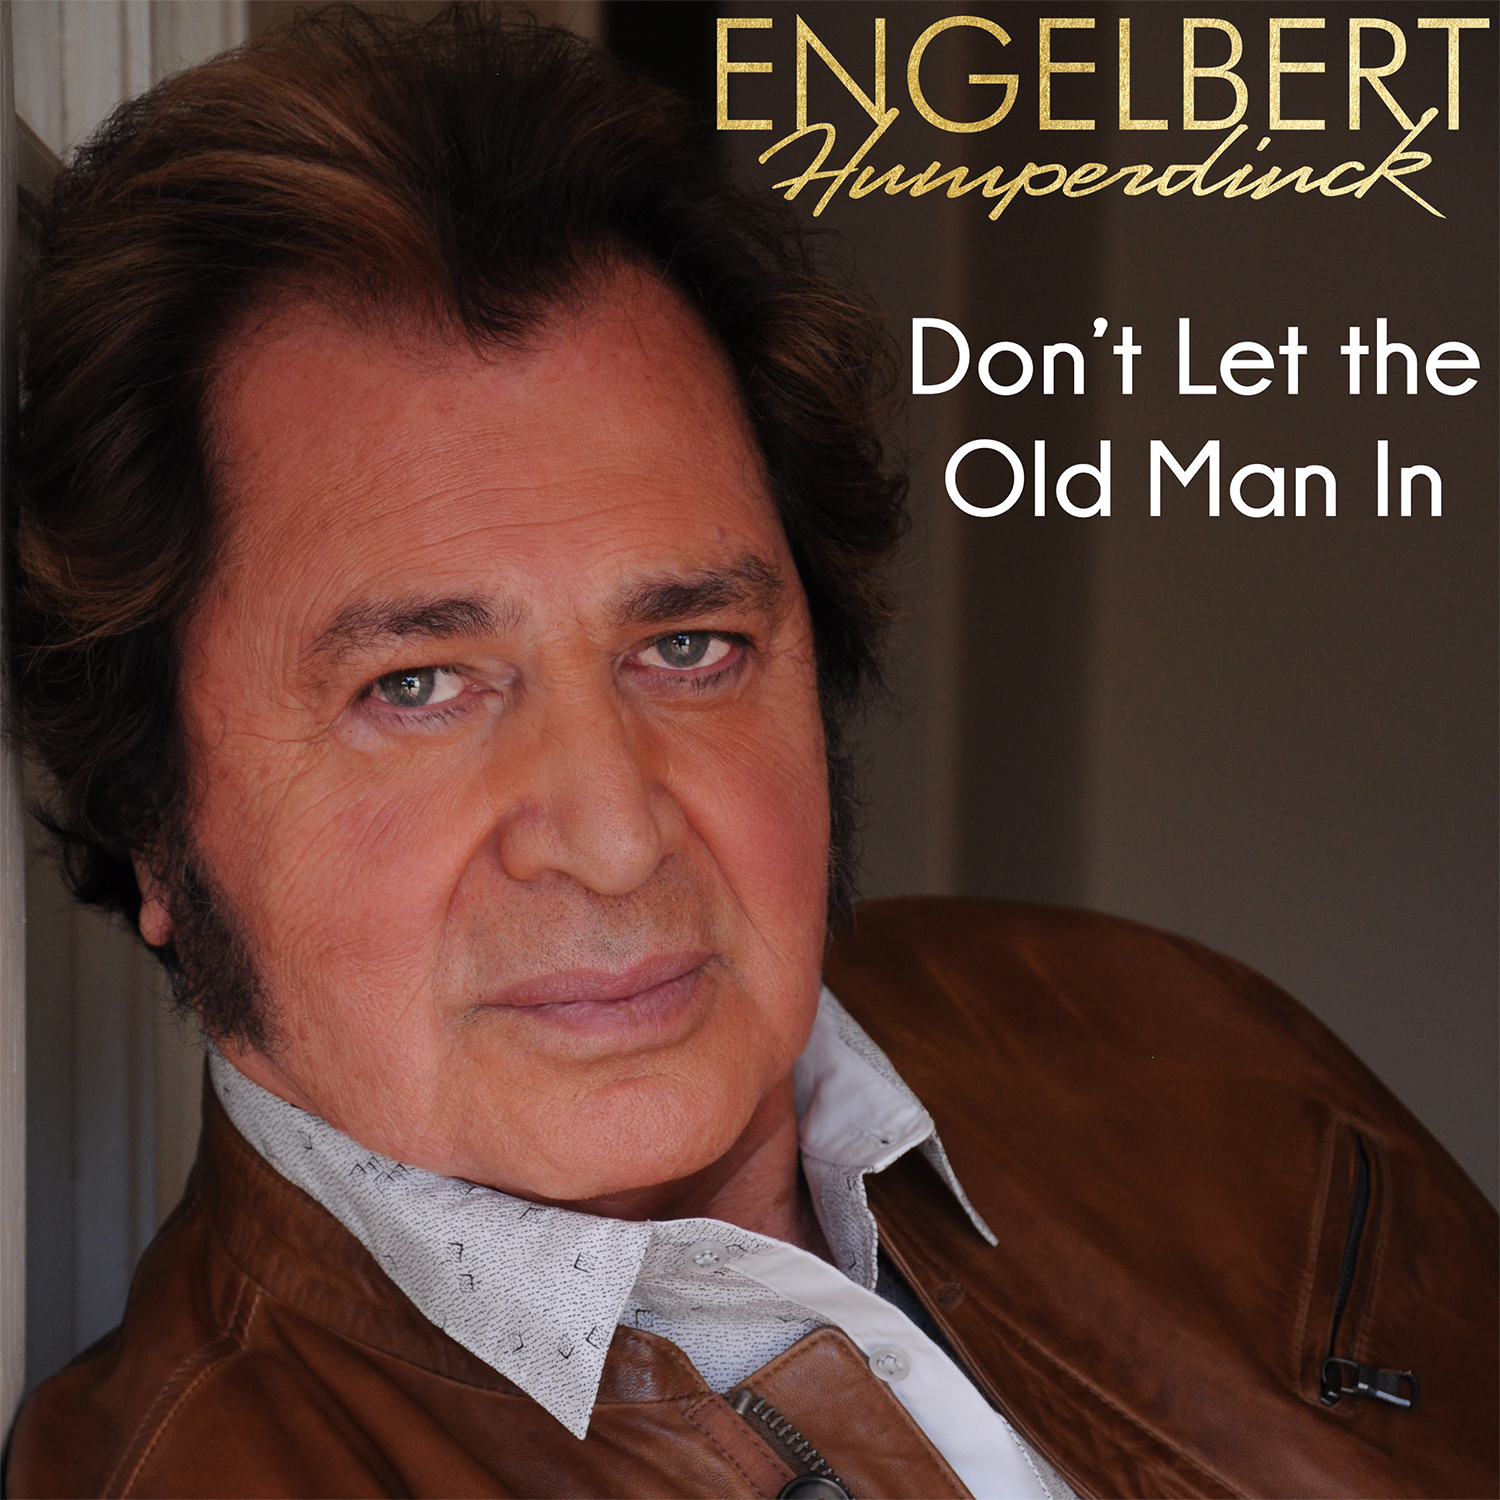 Engelbert Humperdinck - Don't Let the Old Man In